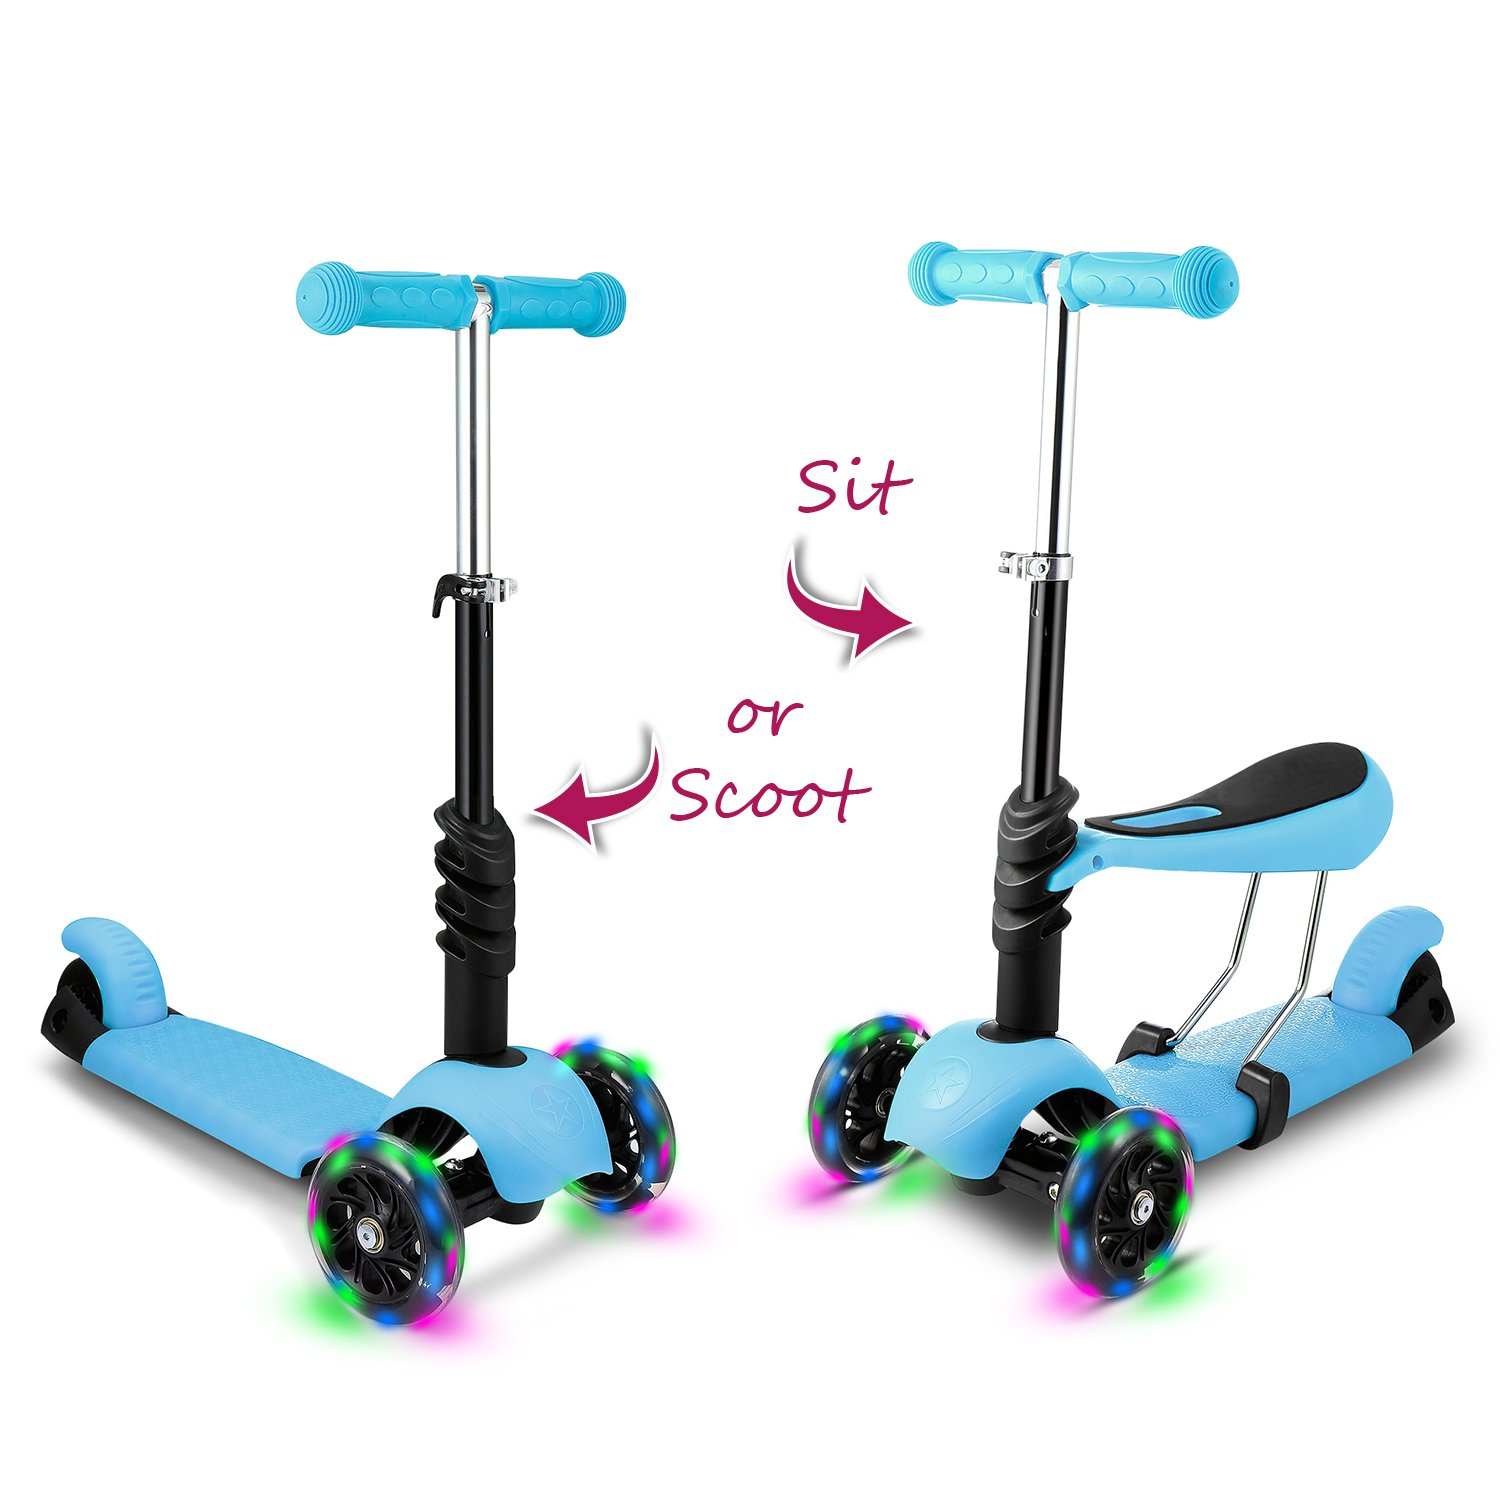 Hikole Kids Toddler Kick Scooter with Seat | Three-Wheeled Mini Foldable Adjustable Push Fun Exercise Toy Scooter with LED Flashing Wheels, Birthday Gift for Boys Girls Age 2 Up (Blue) by Hikole